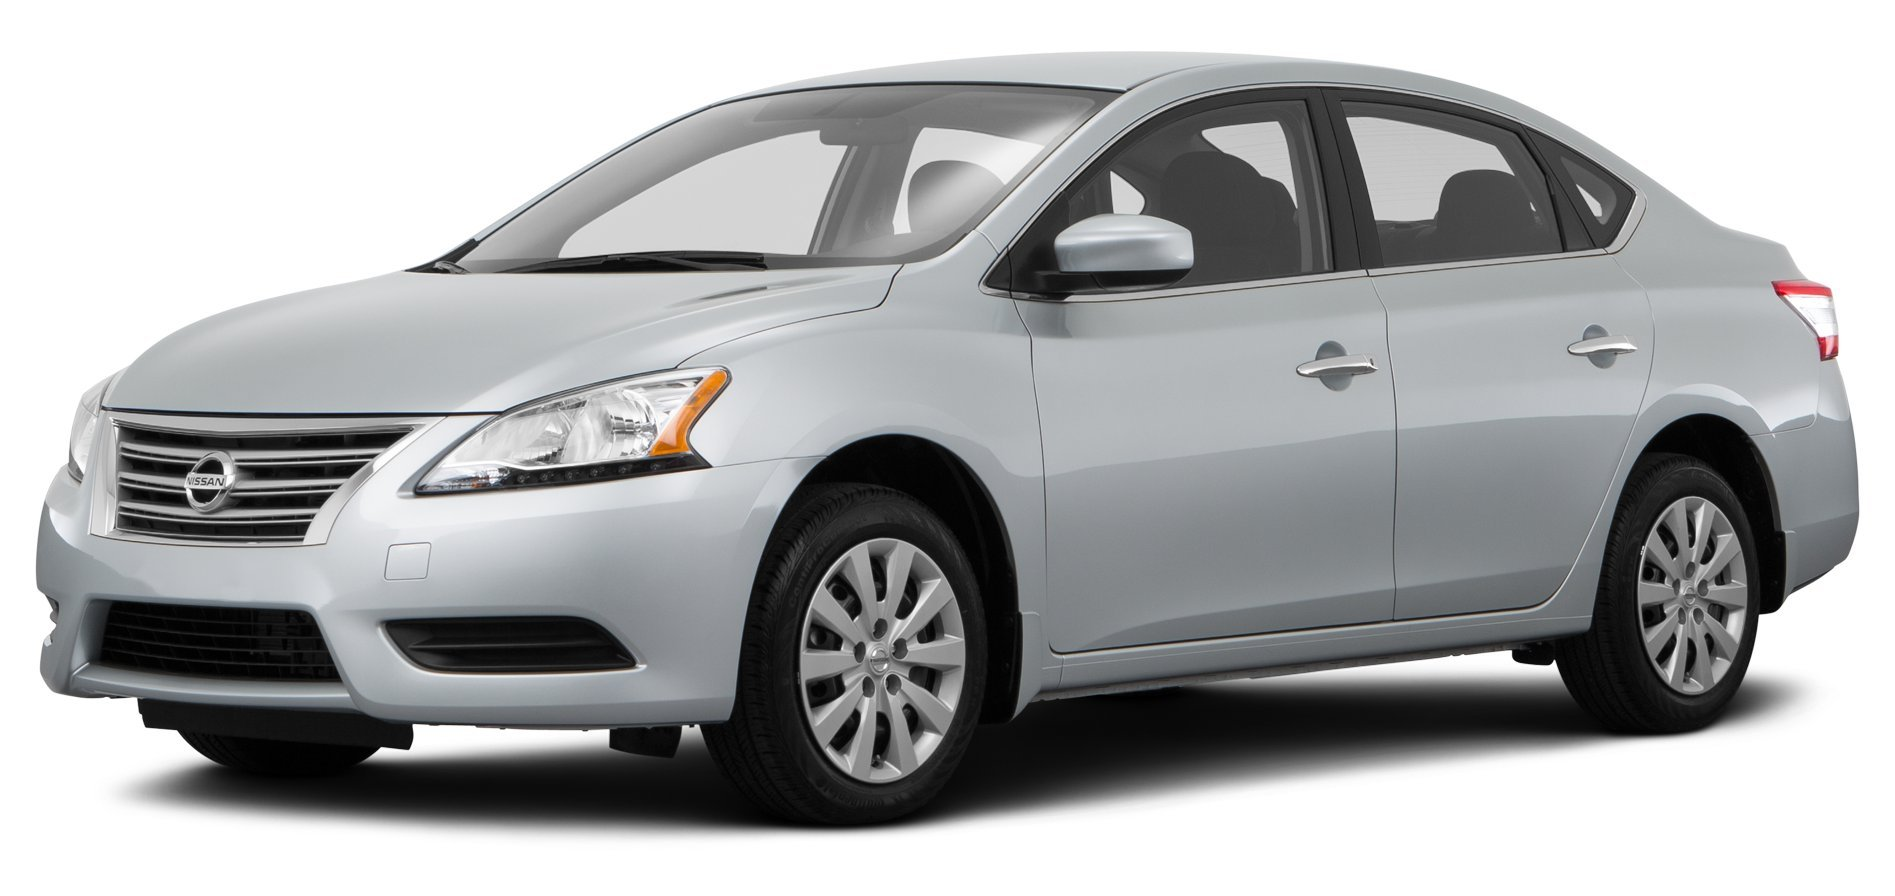 2015 nissan sentra reviews images and specs. Black Bedroom Furniture Sets. Home Design Ideas